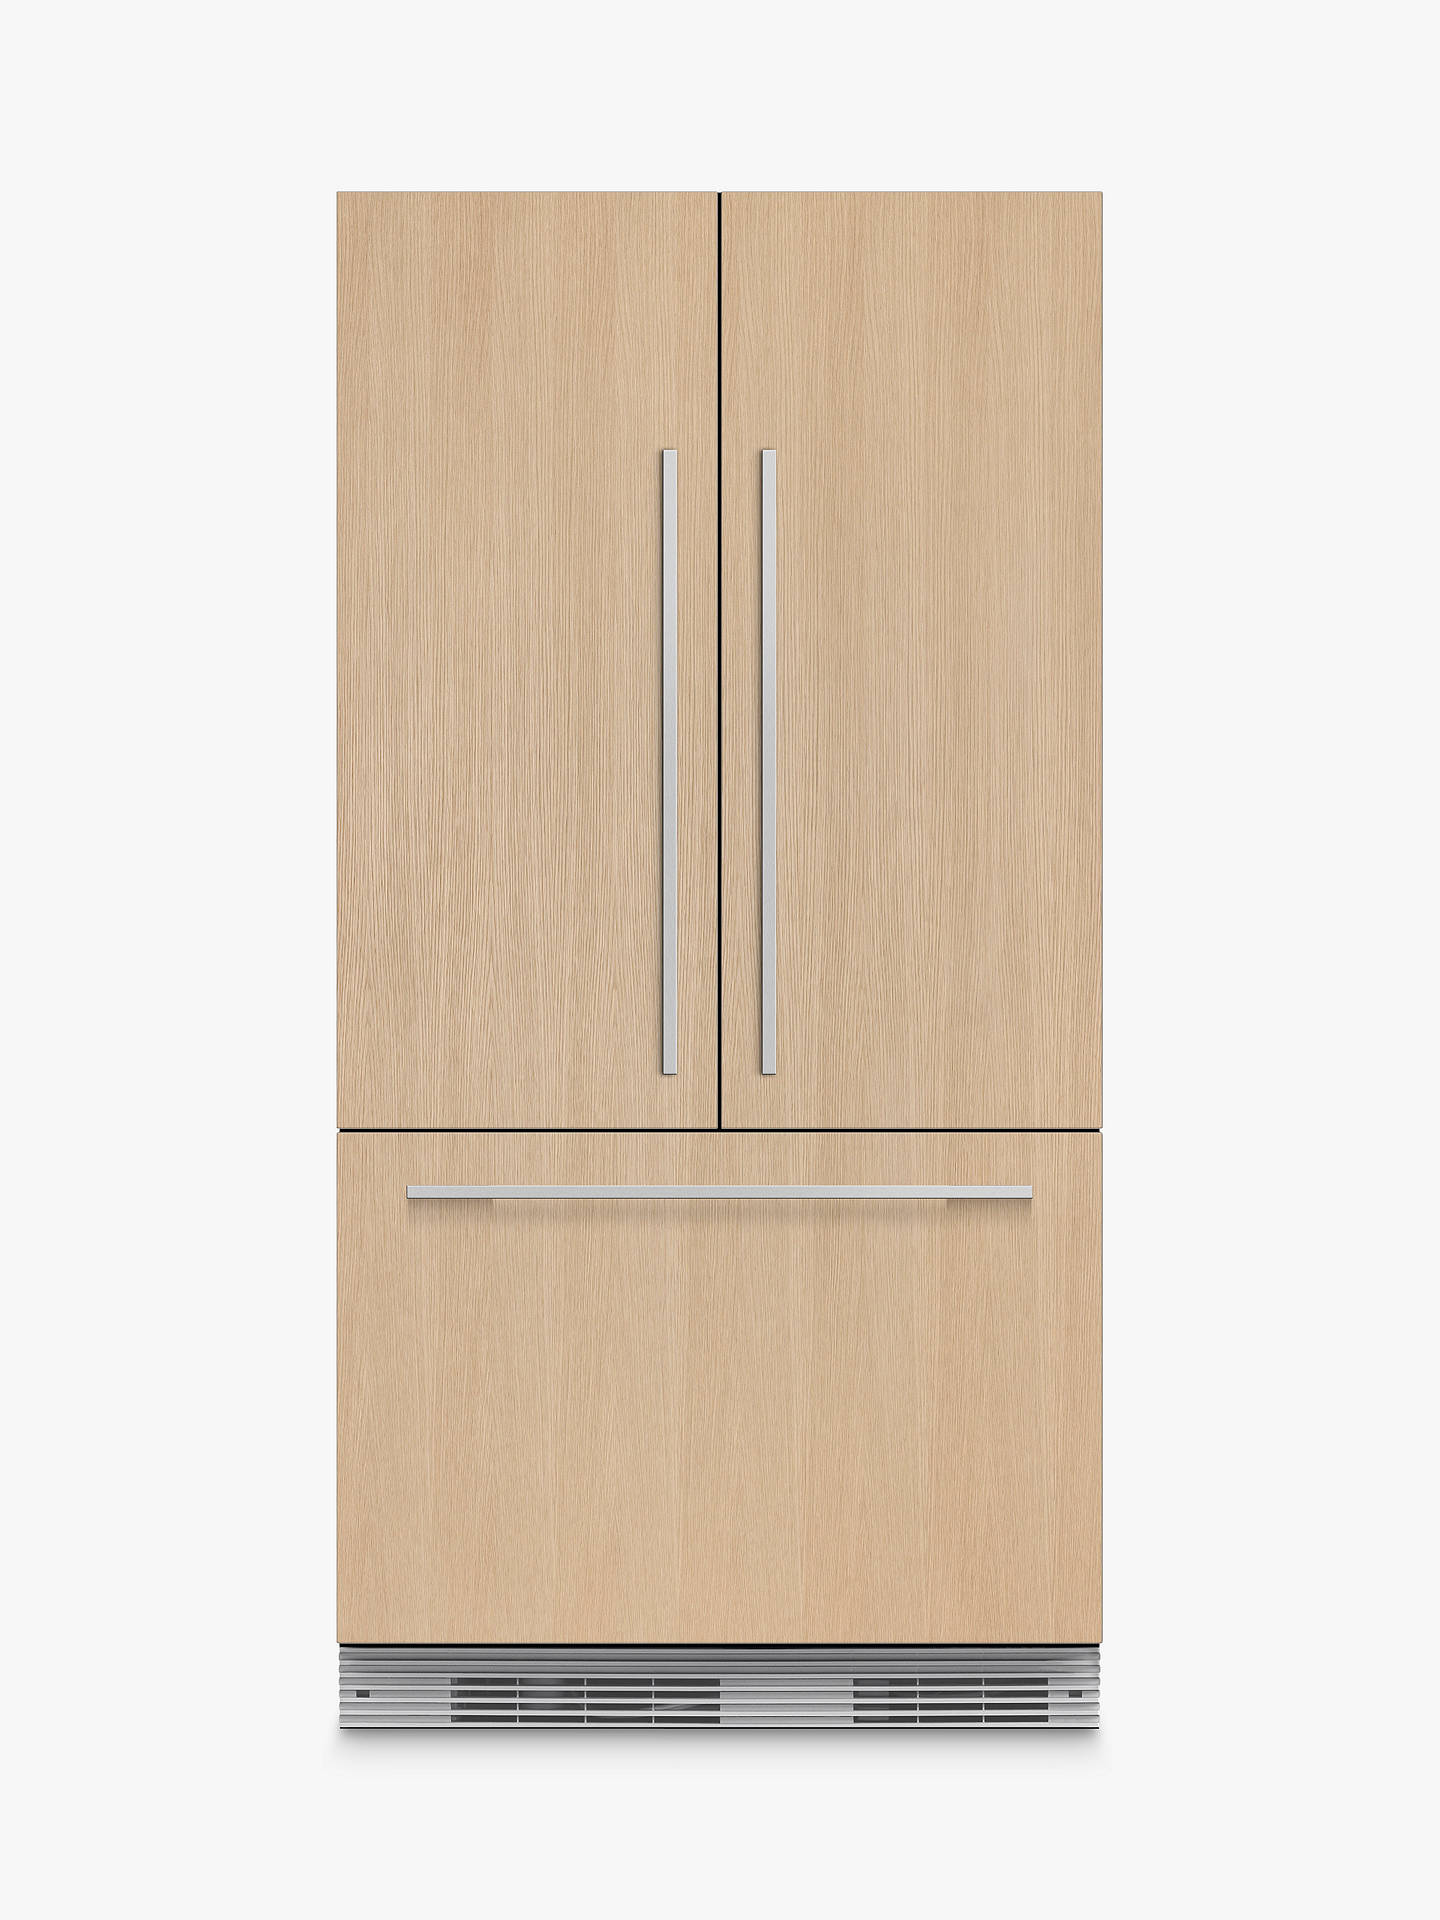 BuyFisher & Paykel RS90A1 Integrated Fridge Freezer, A+ Energy Rating, 90cm Wide Online at johnlewis.com